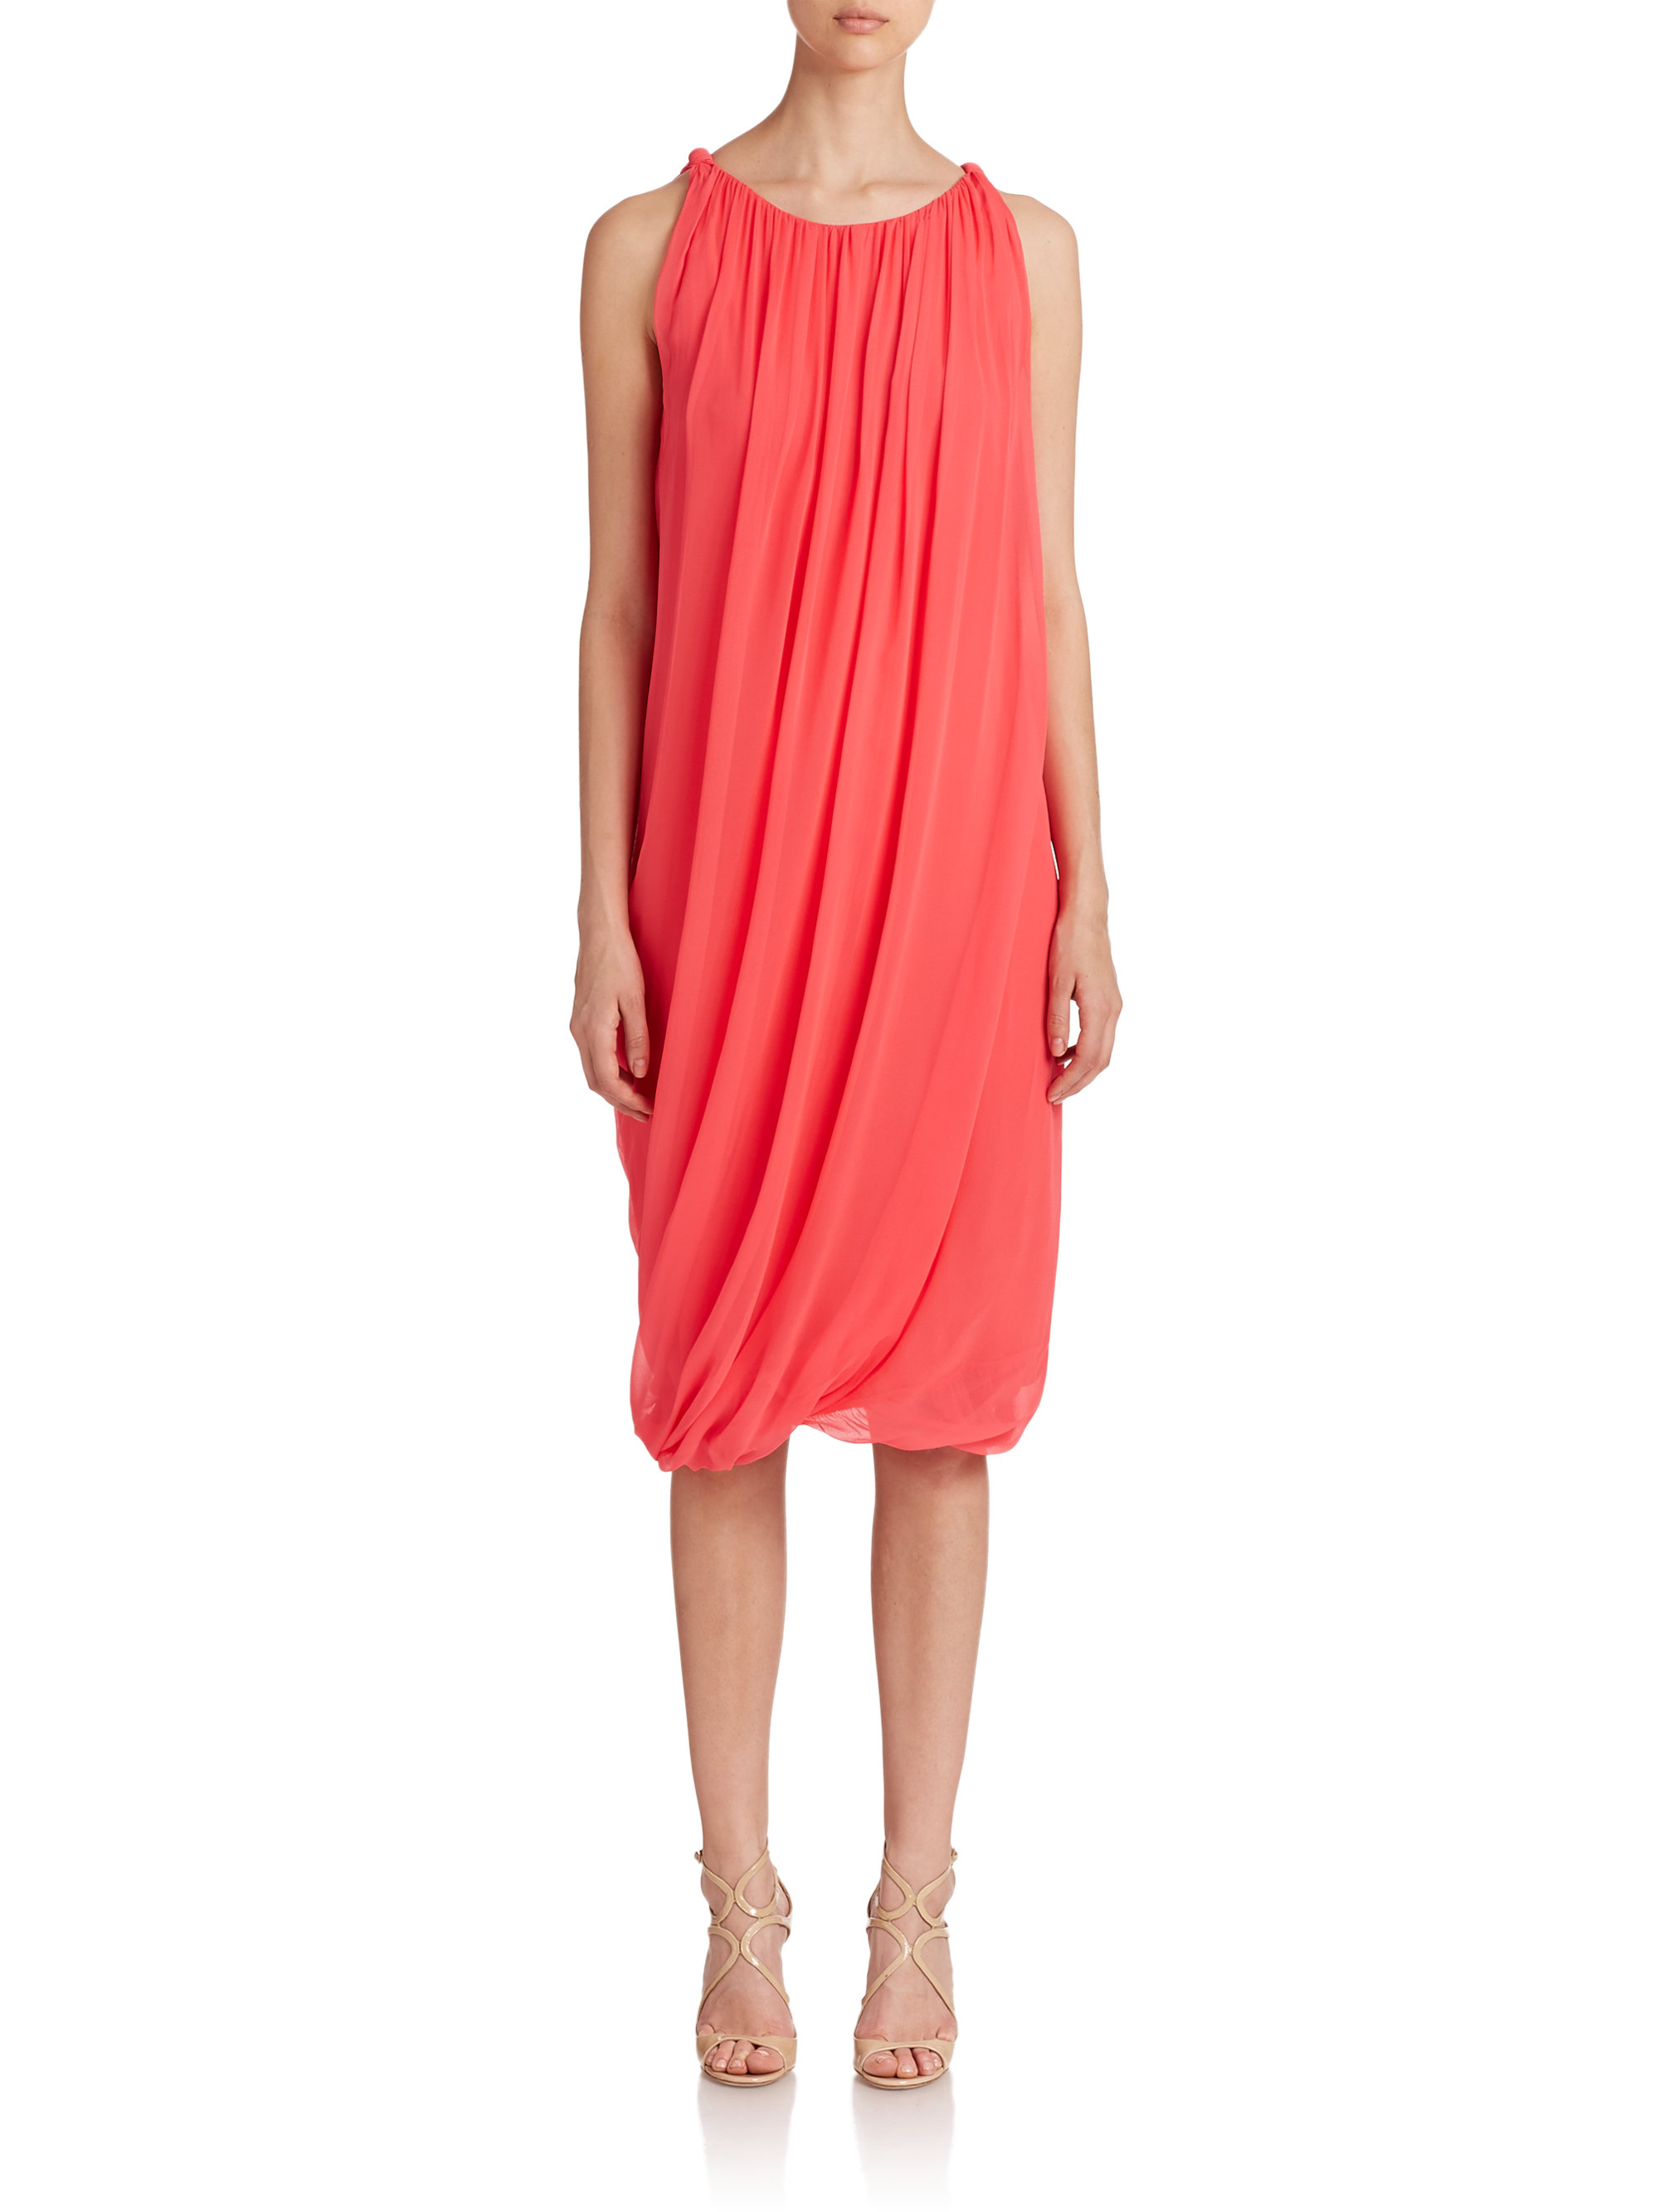 6a95f71c4a1 Lyst - Elie Tahari Alanis Dress in Red